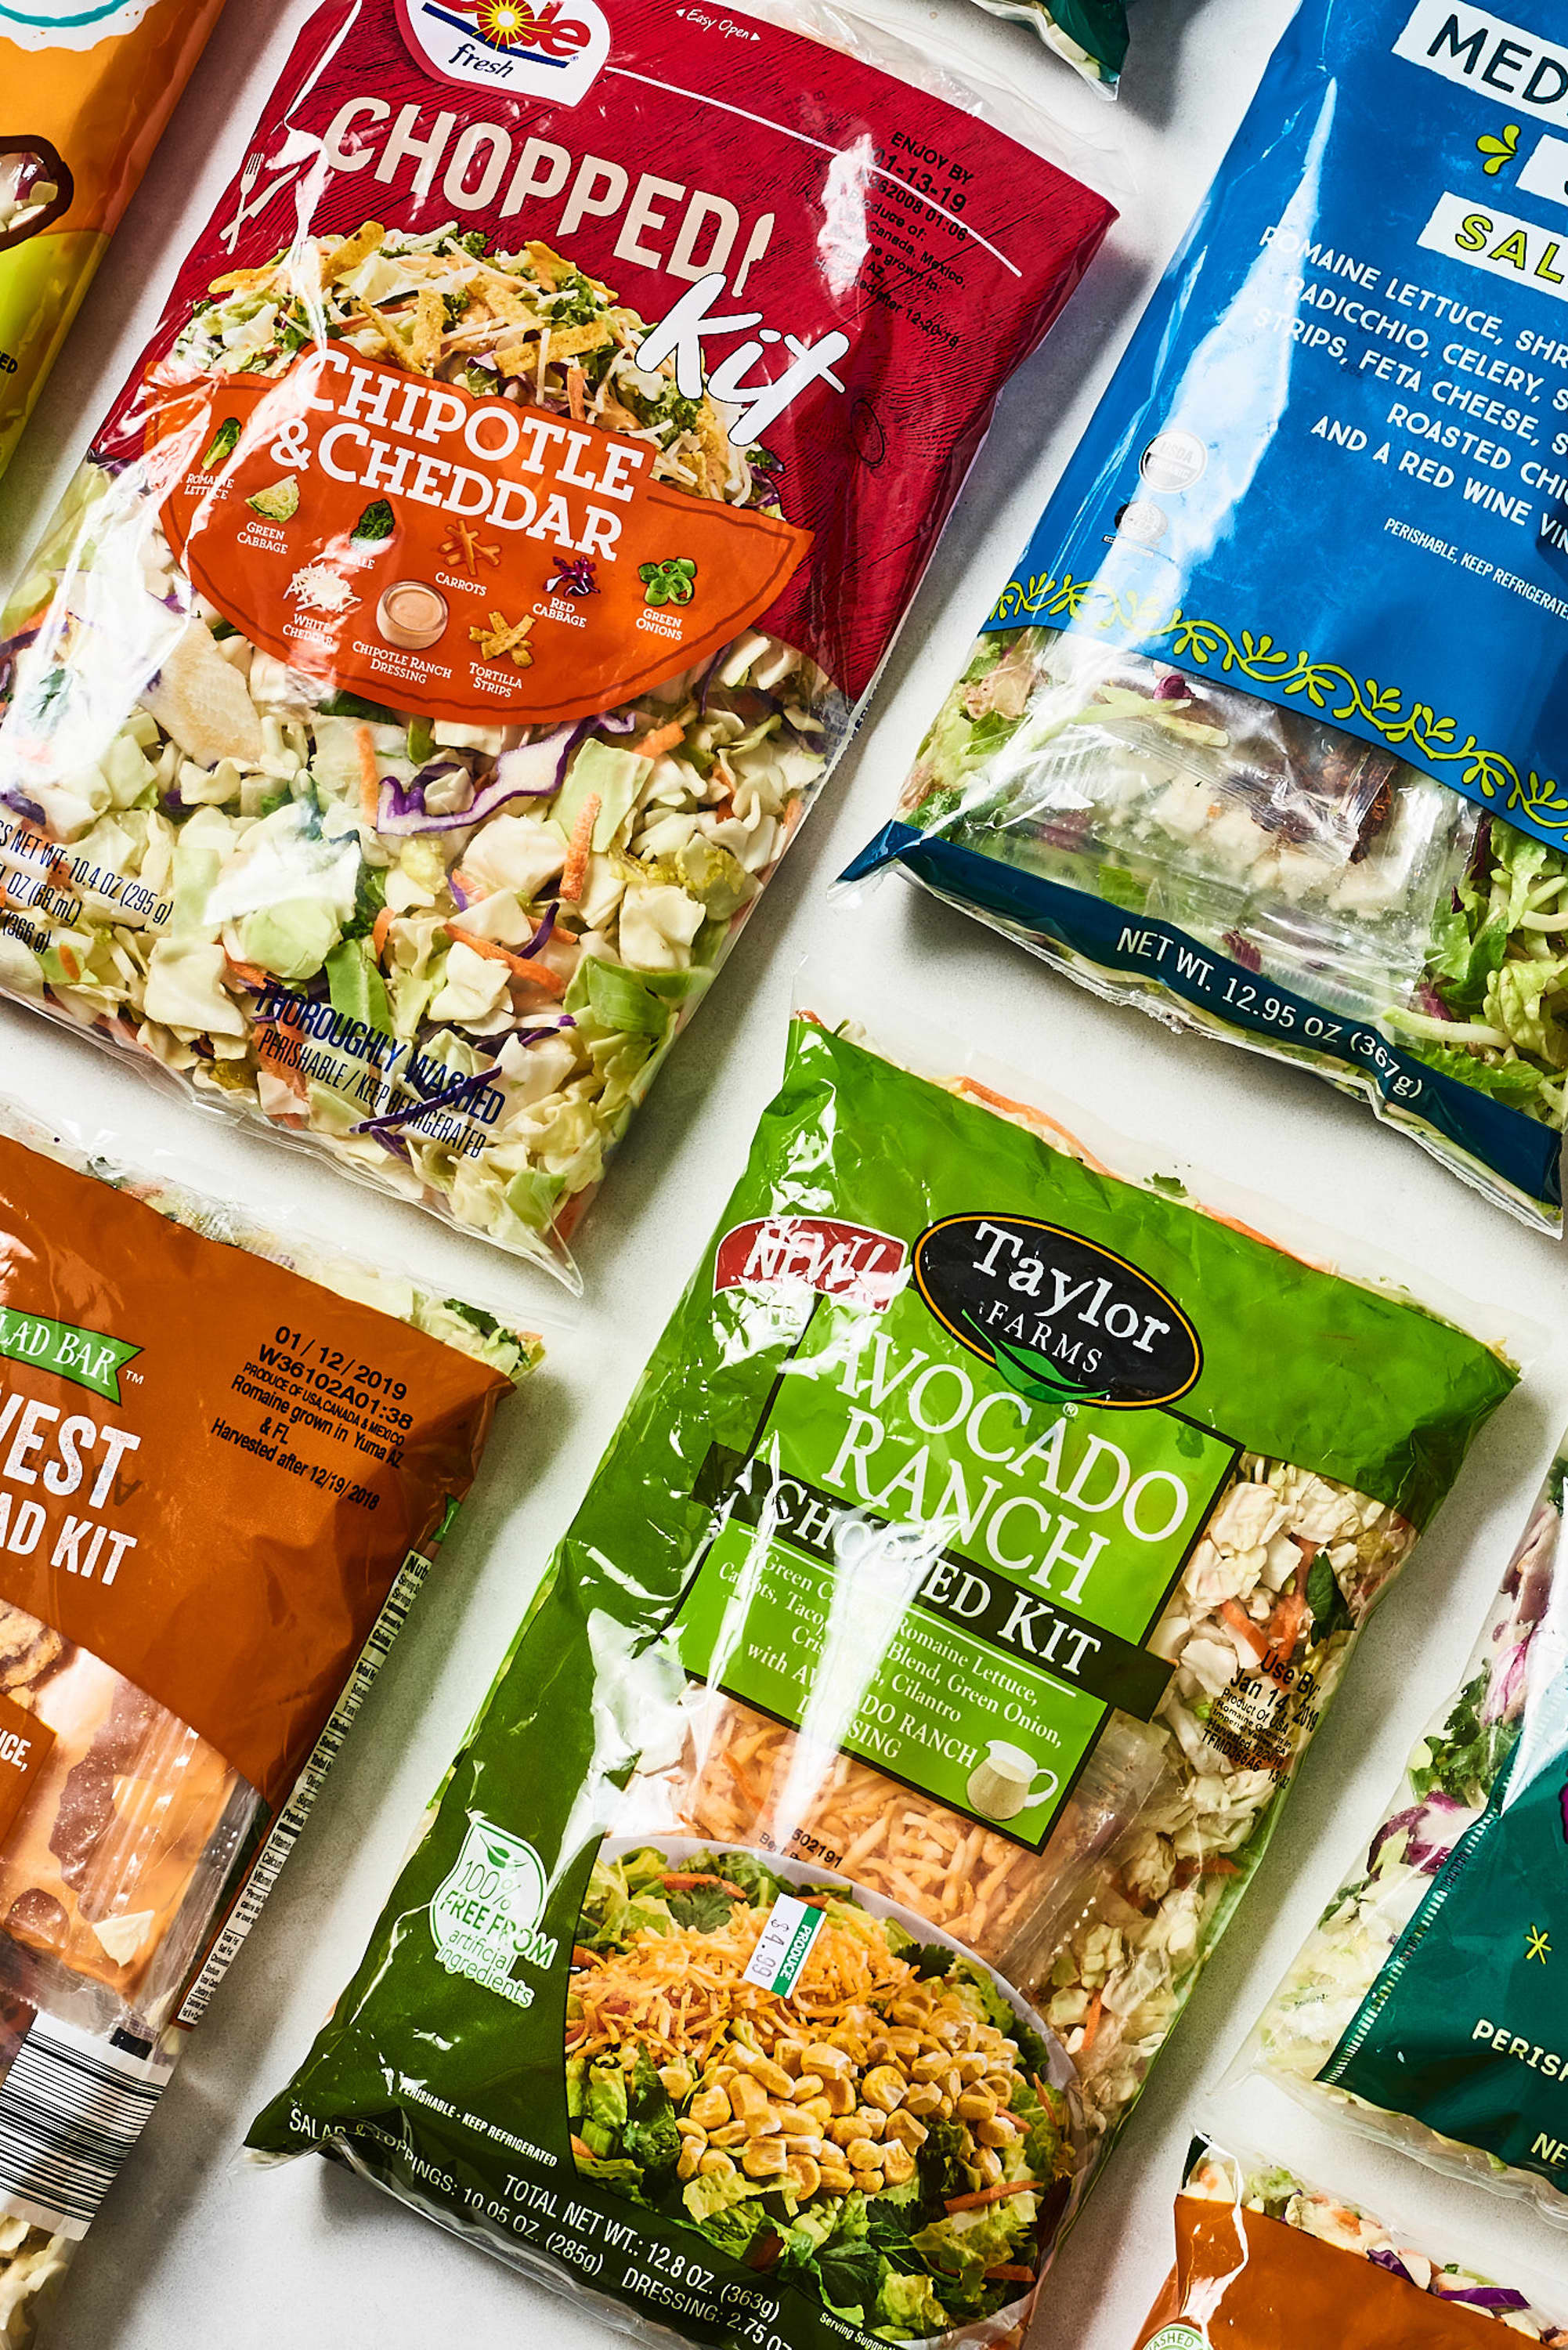 We Tried Nearly Every Salad Kit in America. Here Are the Best of the Best.